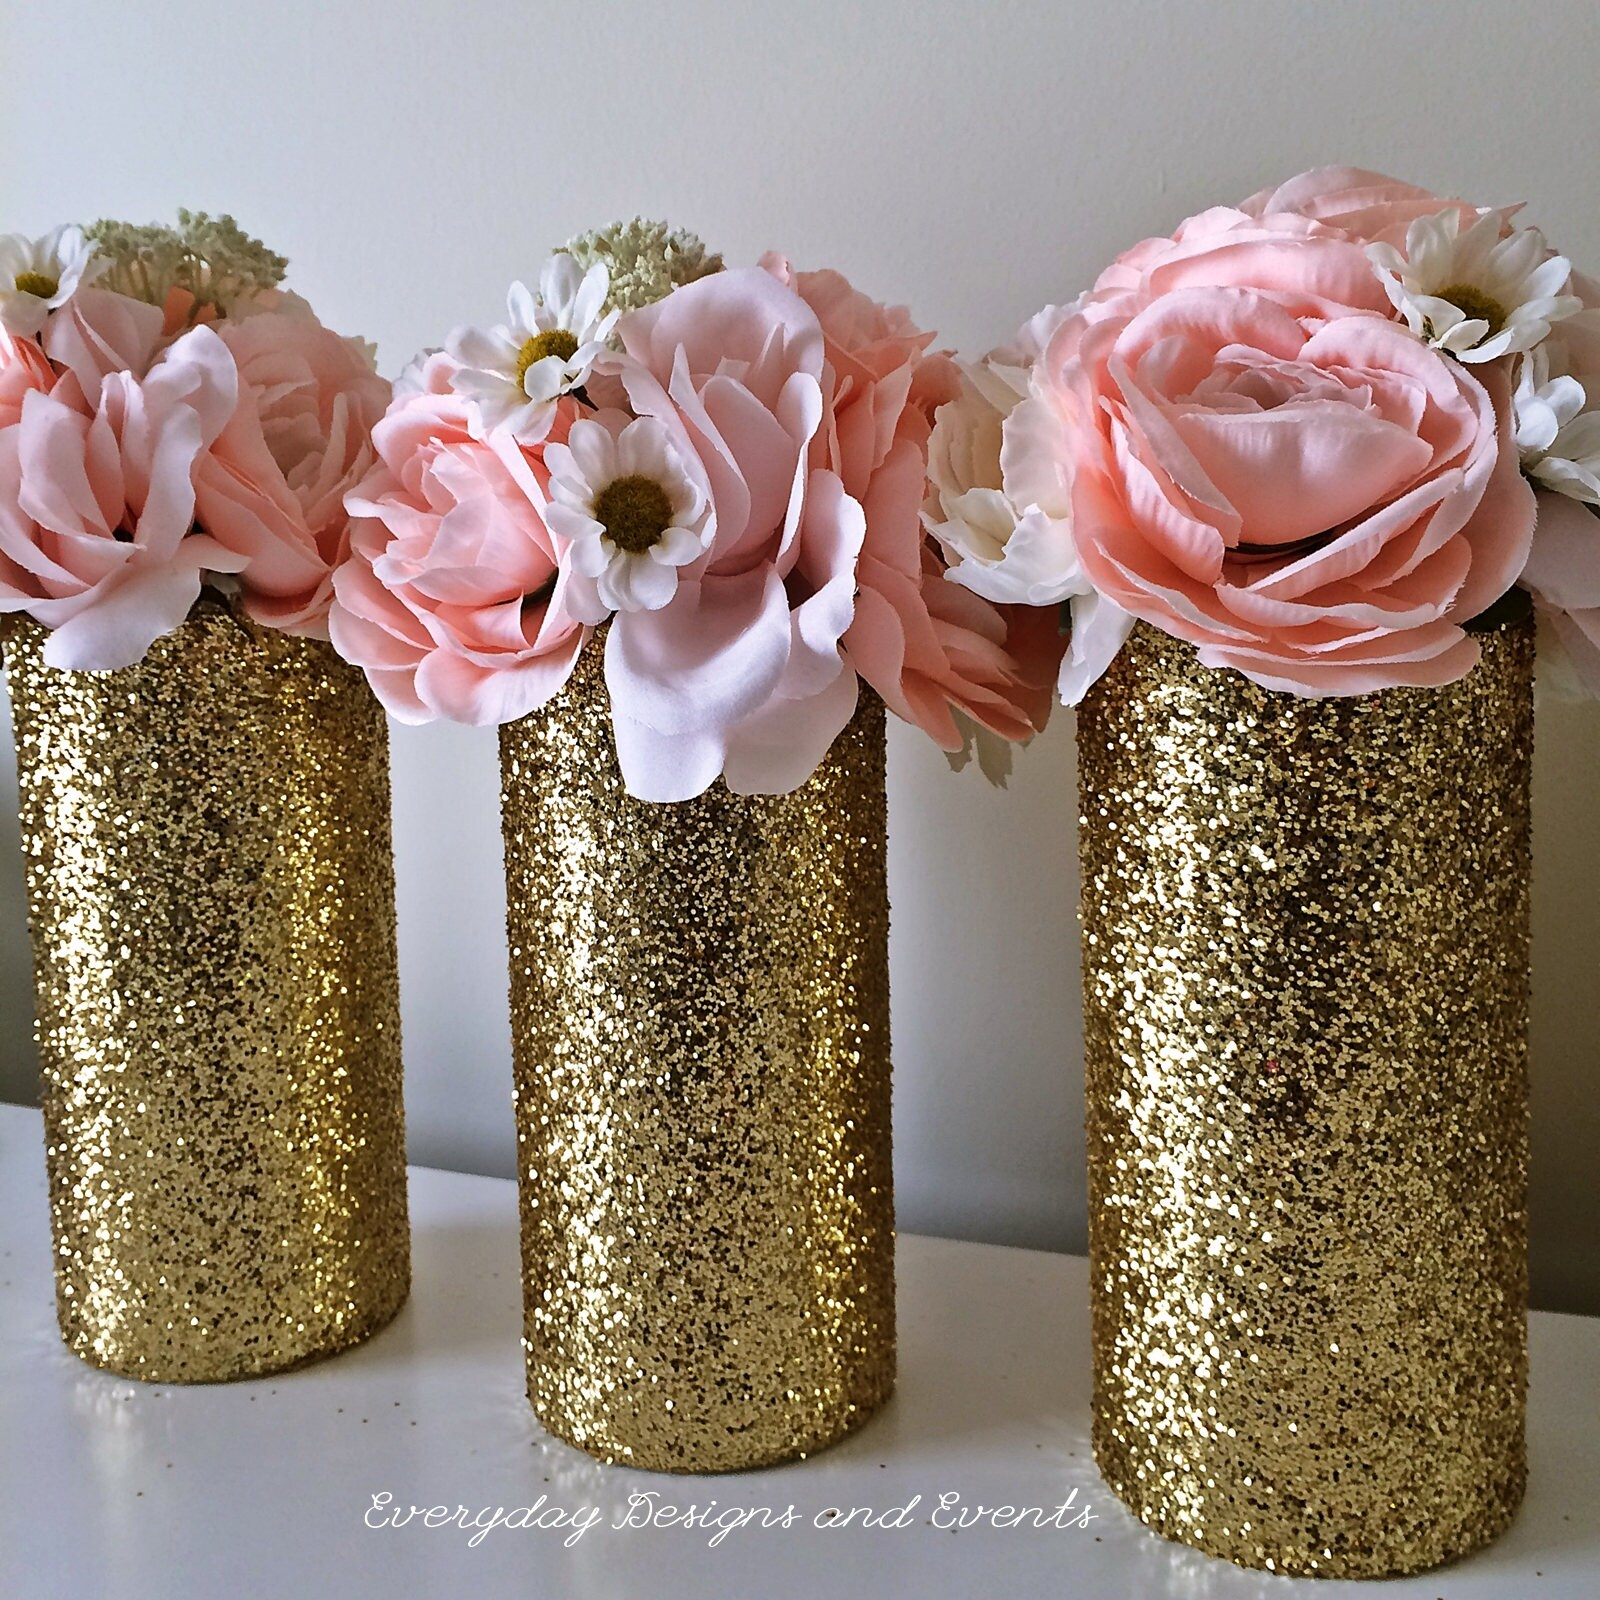 3 gold wedding centerpiece wedding decorations gold glitter zoom reviewsmspy